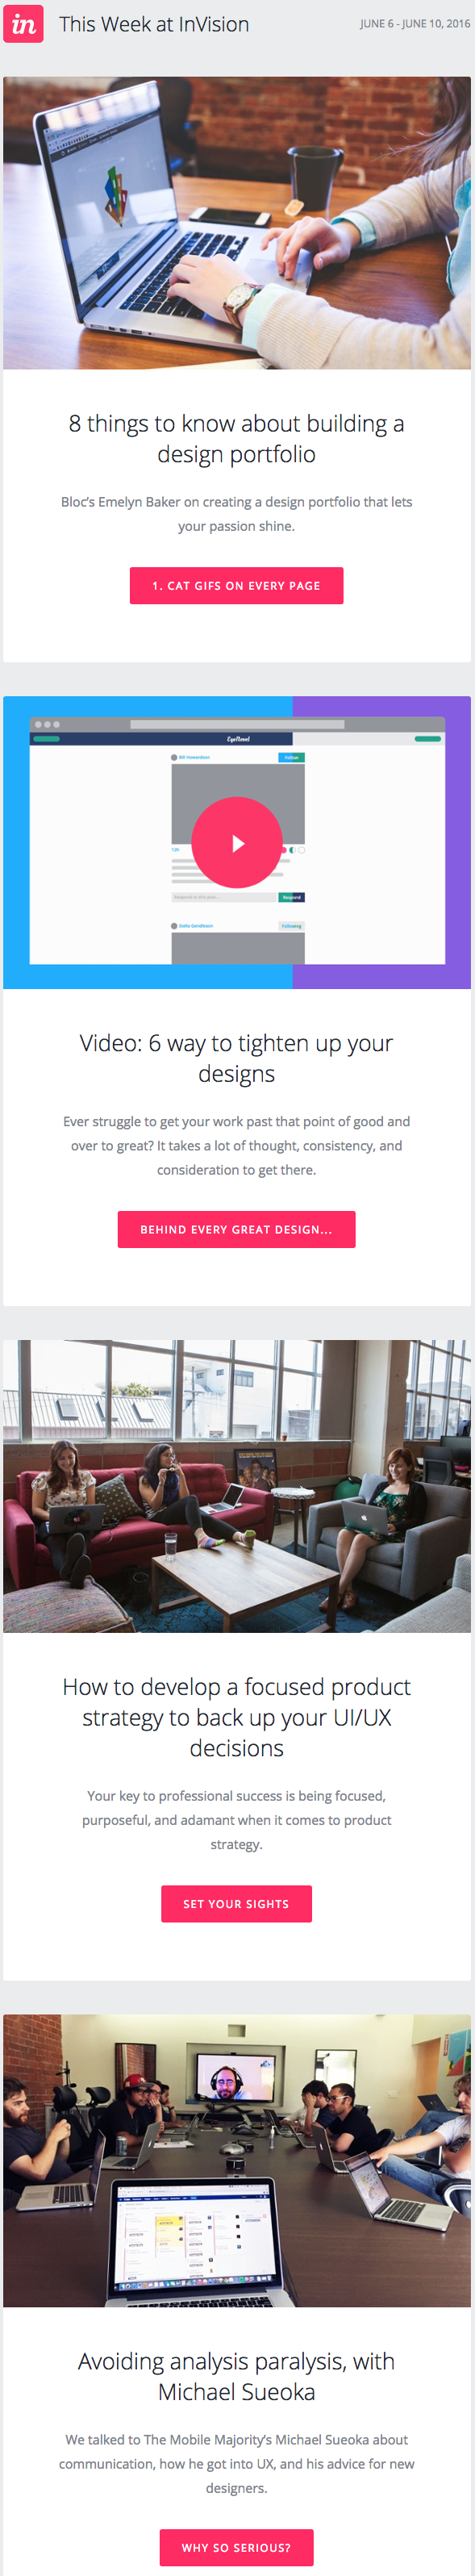 invision newsletter examplepng